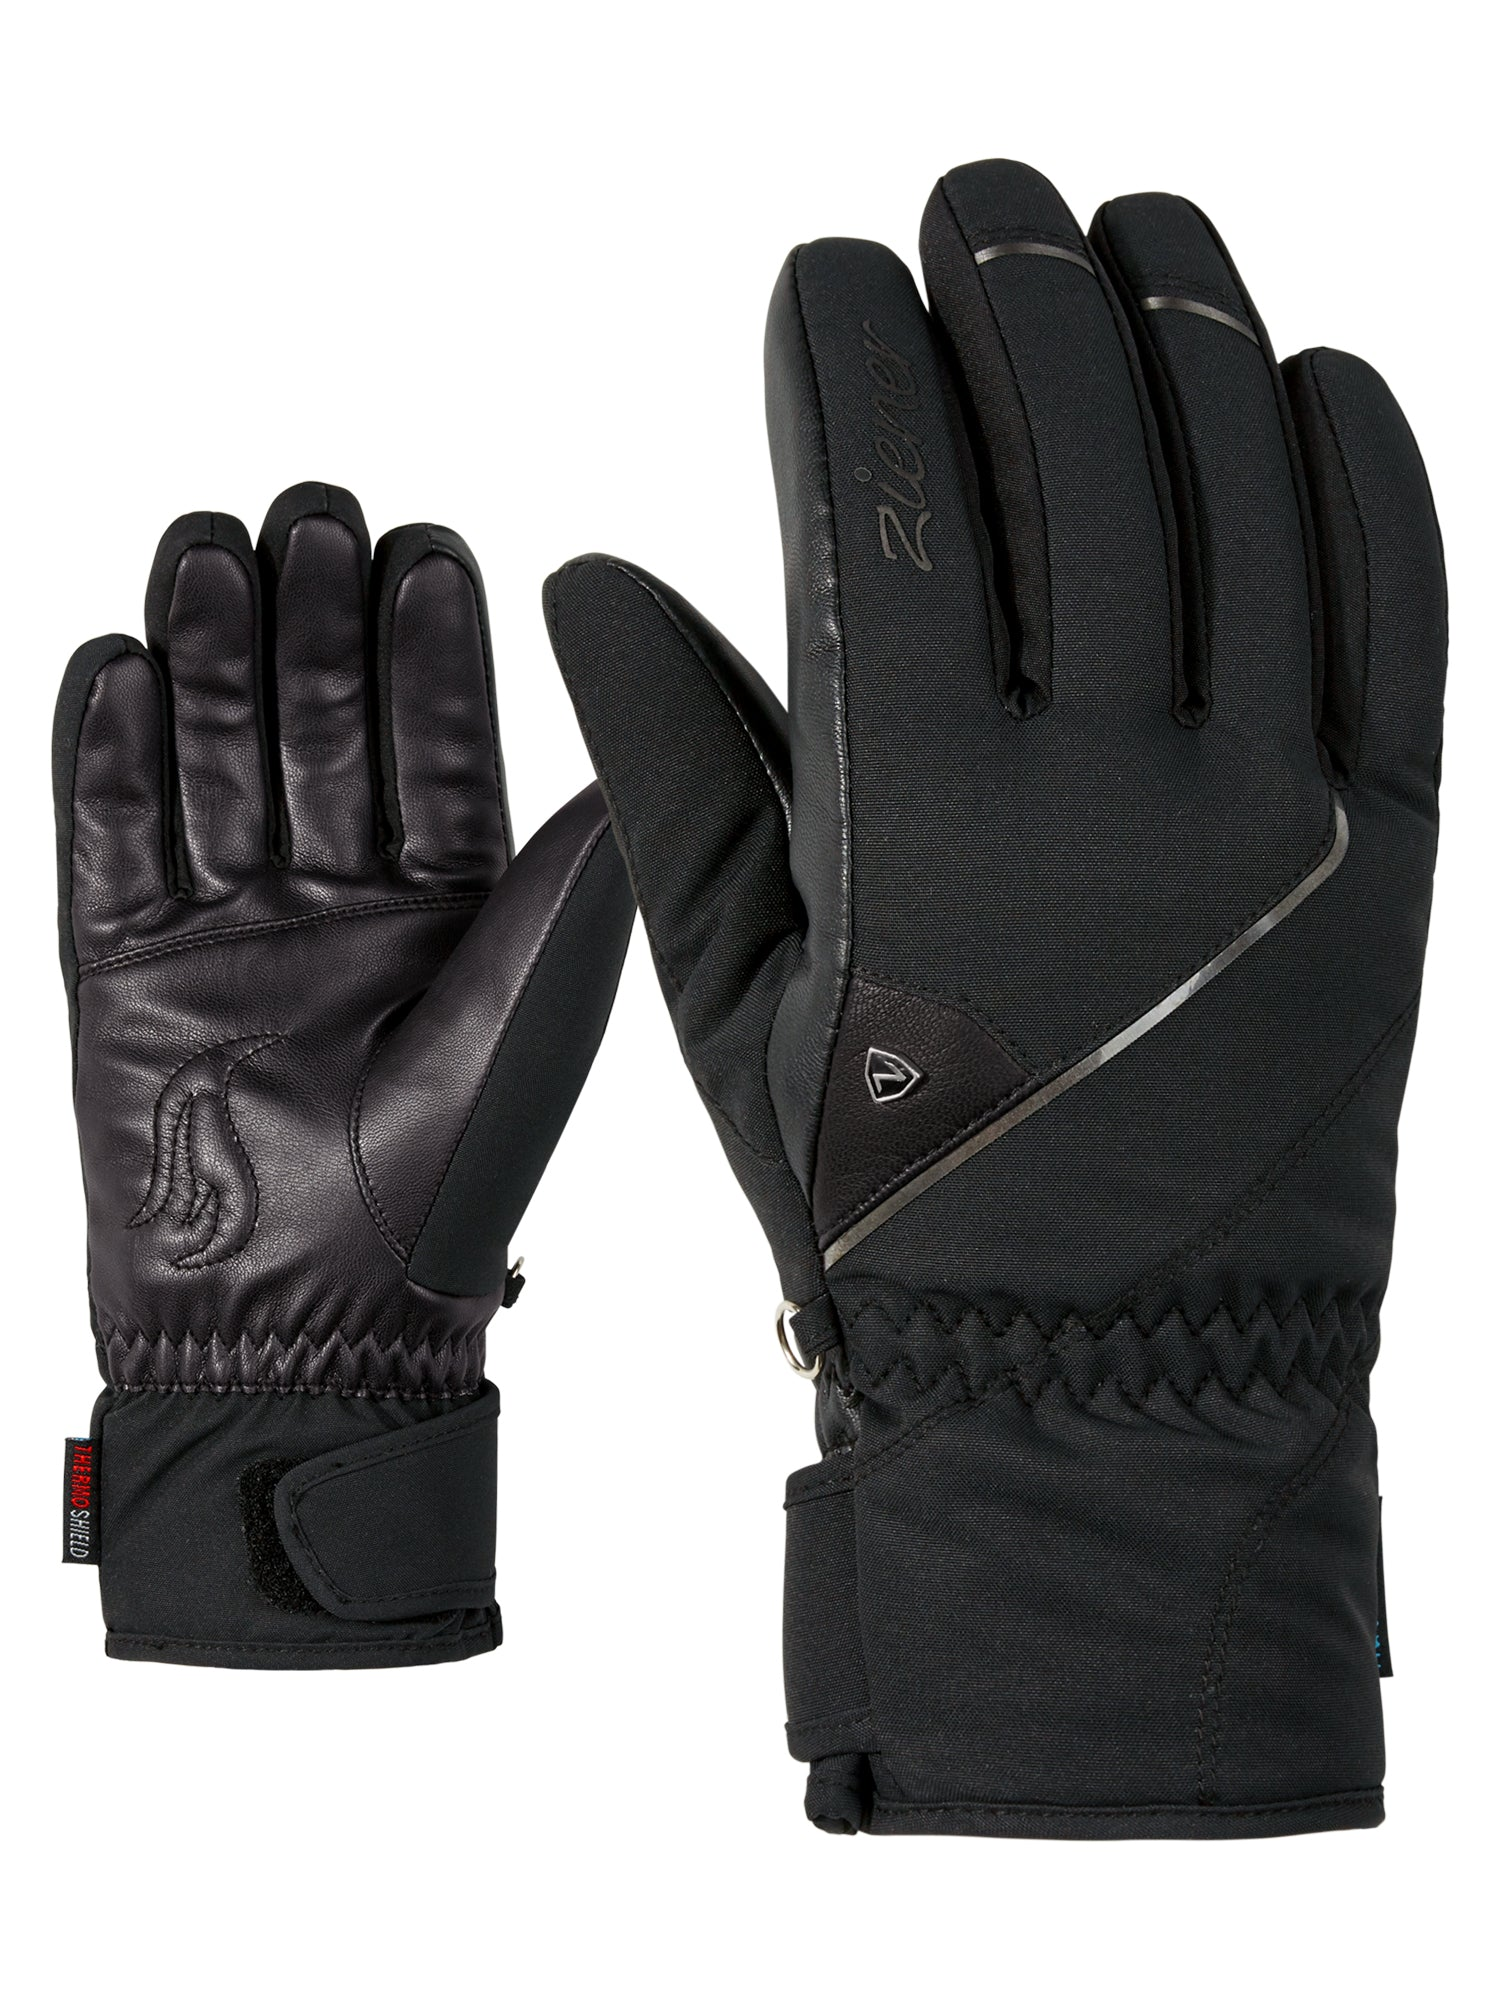 ZIENER Kaya Hand Warmer Glove Black